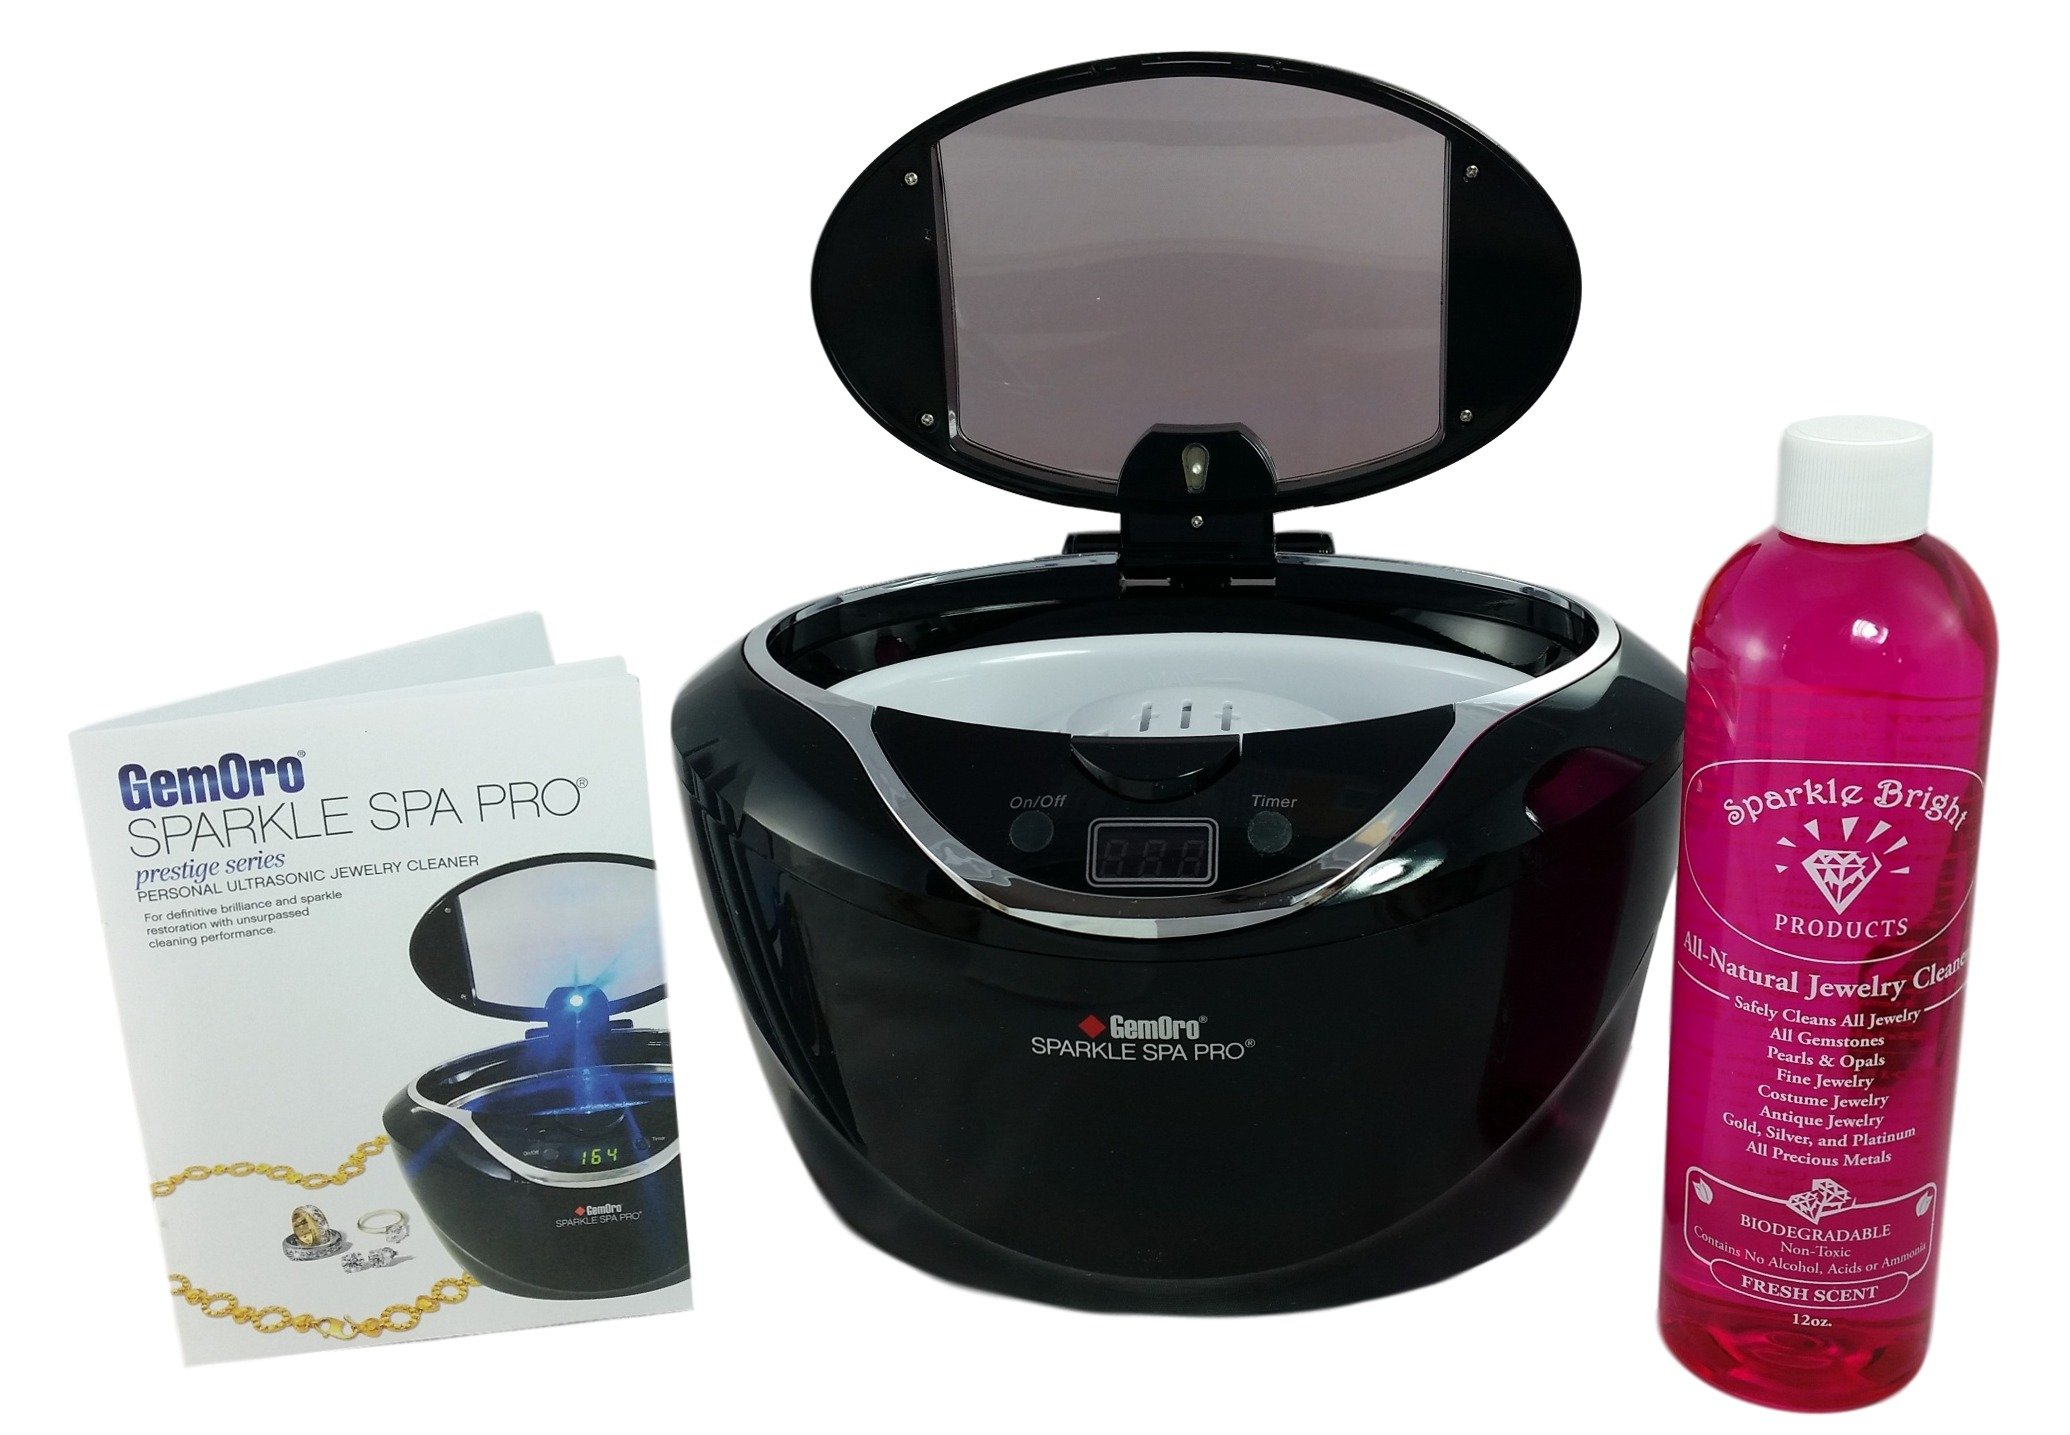 GEMORO 1790 SPARKLE SPA PRO BLACK ULTRASONIC JEWELRY CLEANER KIT & Sparkle Bright All-Natural Jewelry Cleaner Solution, 12oz.